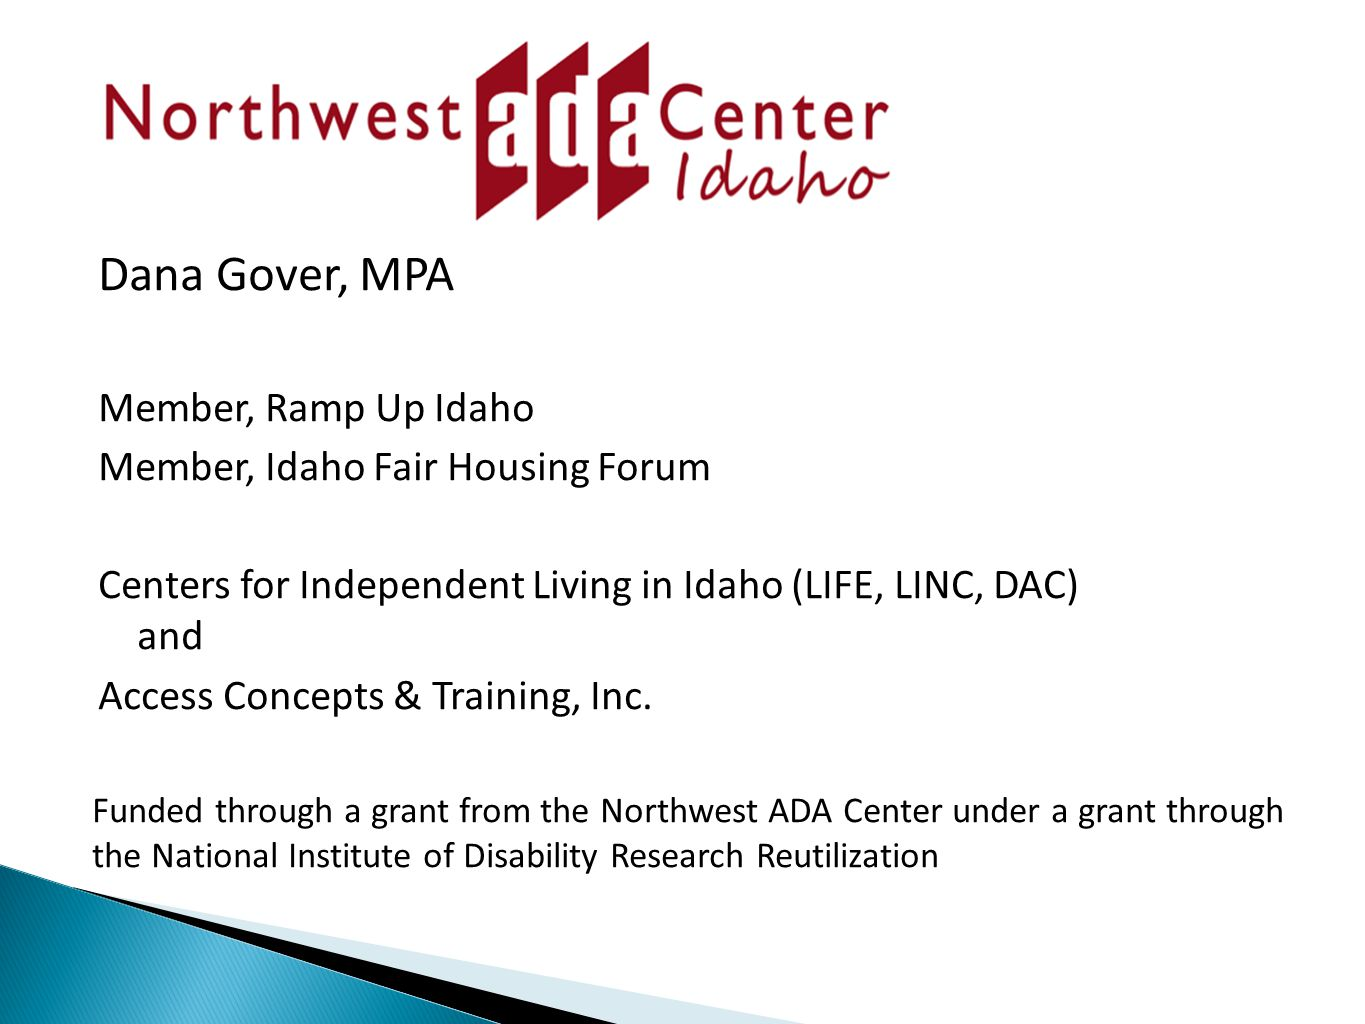 Dana Gover, MPA Member, Ramp Up Idaho Member, Idaho Fair Housing Forum Centers for Independent Living in Idaho (LIFE, LINC, DAC) and Access Concepts & Training, Inc.